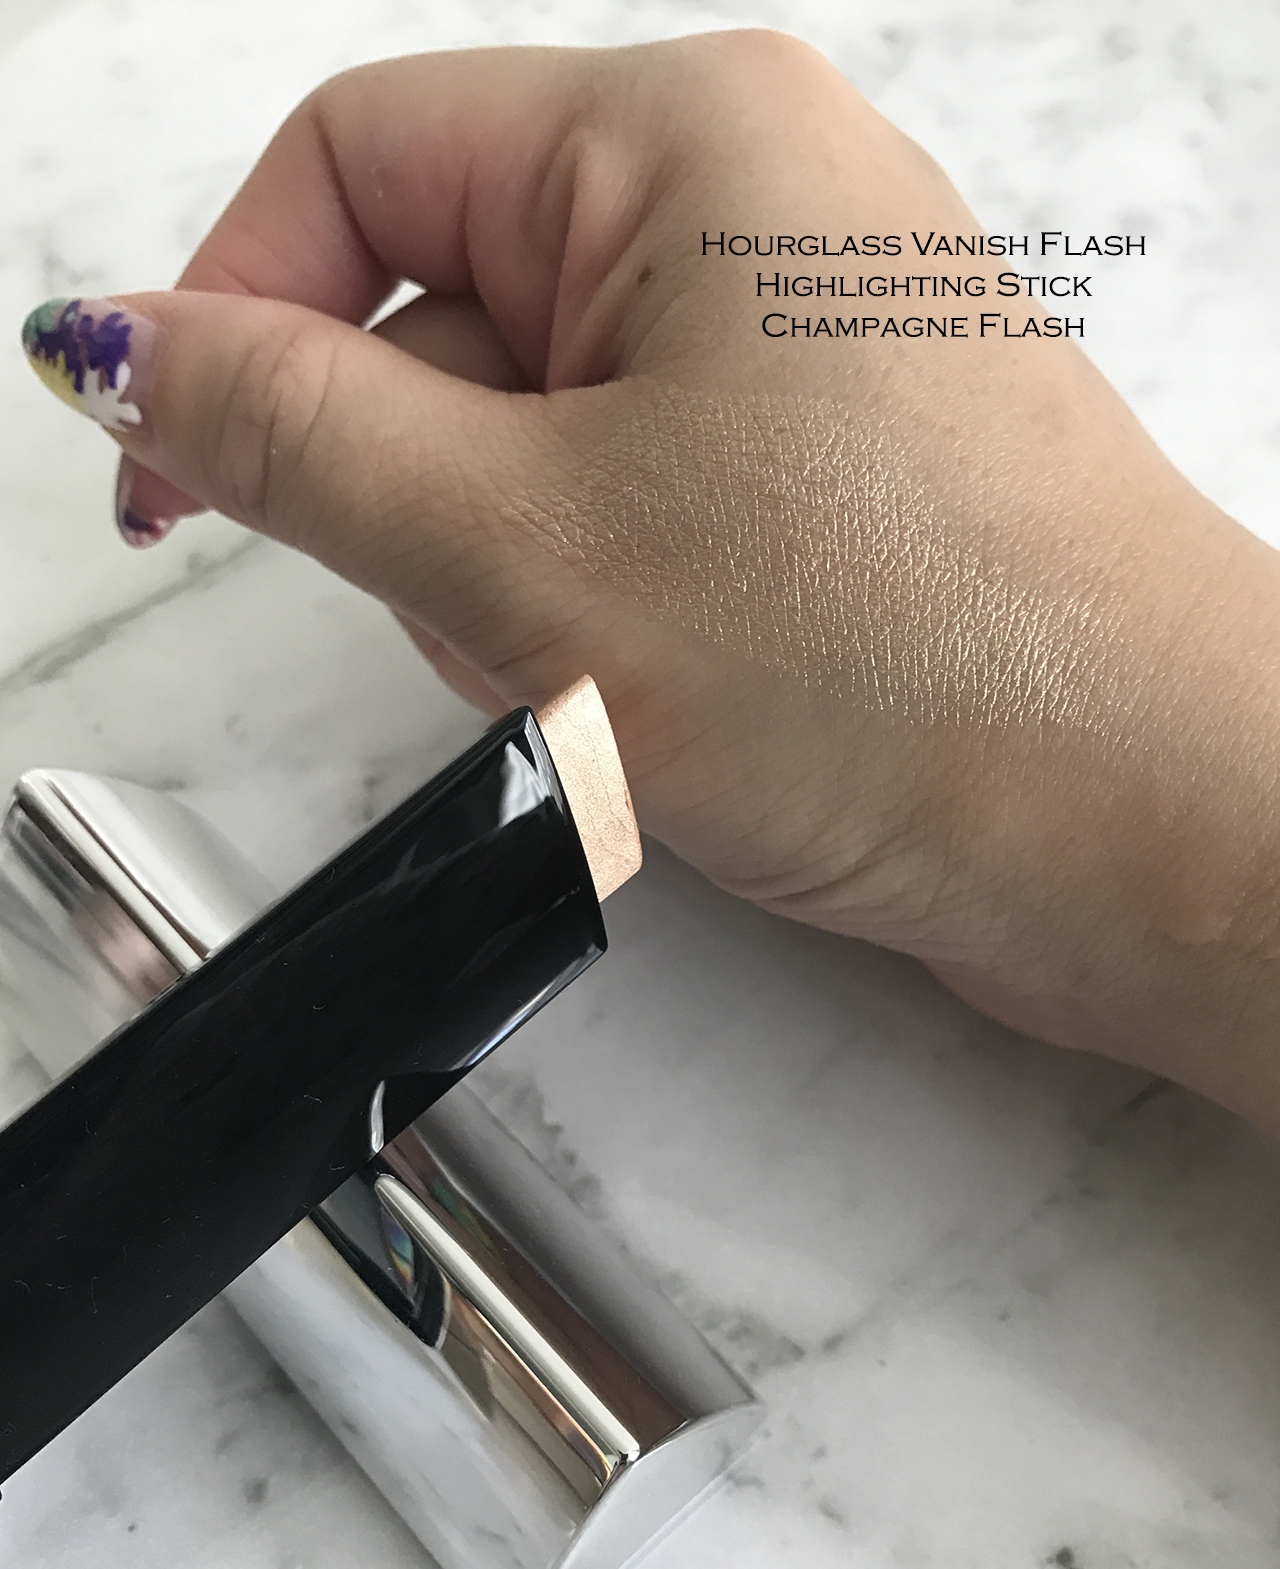 Hourglass Vanish Flash Highlighting Stick Champagne Flash swatch